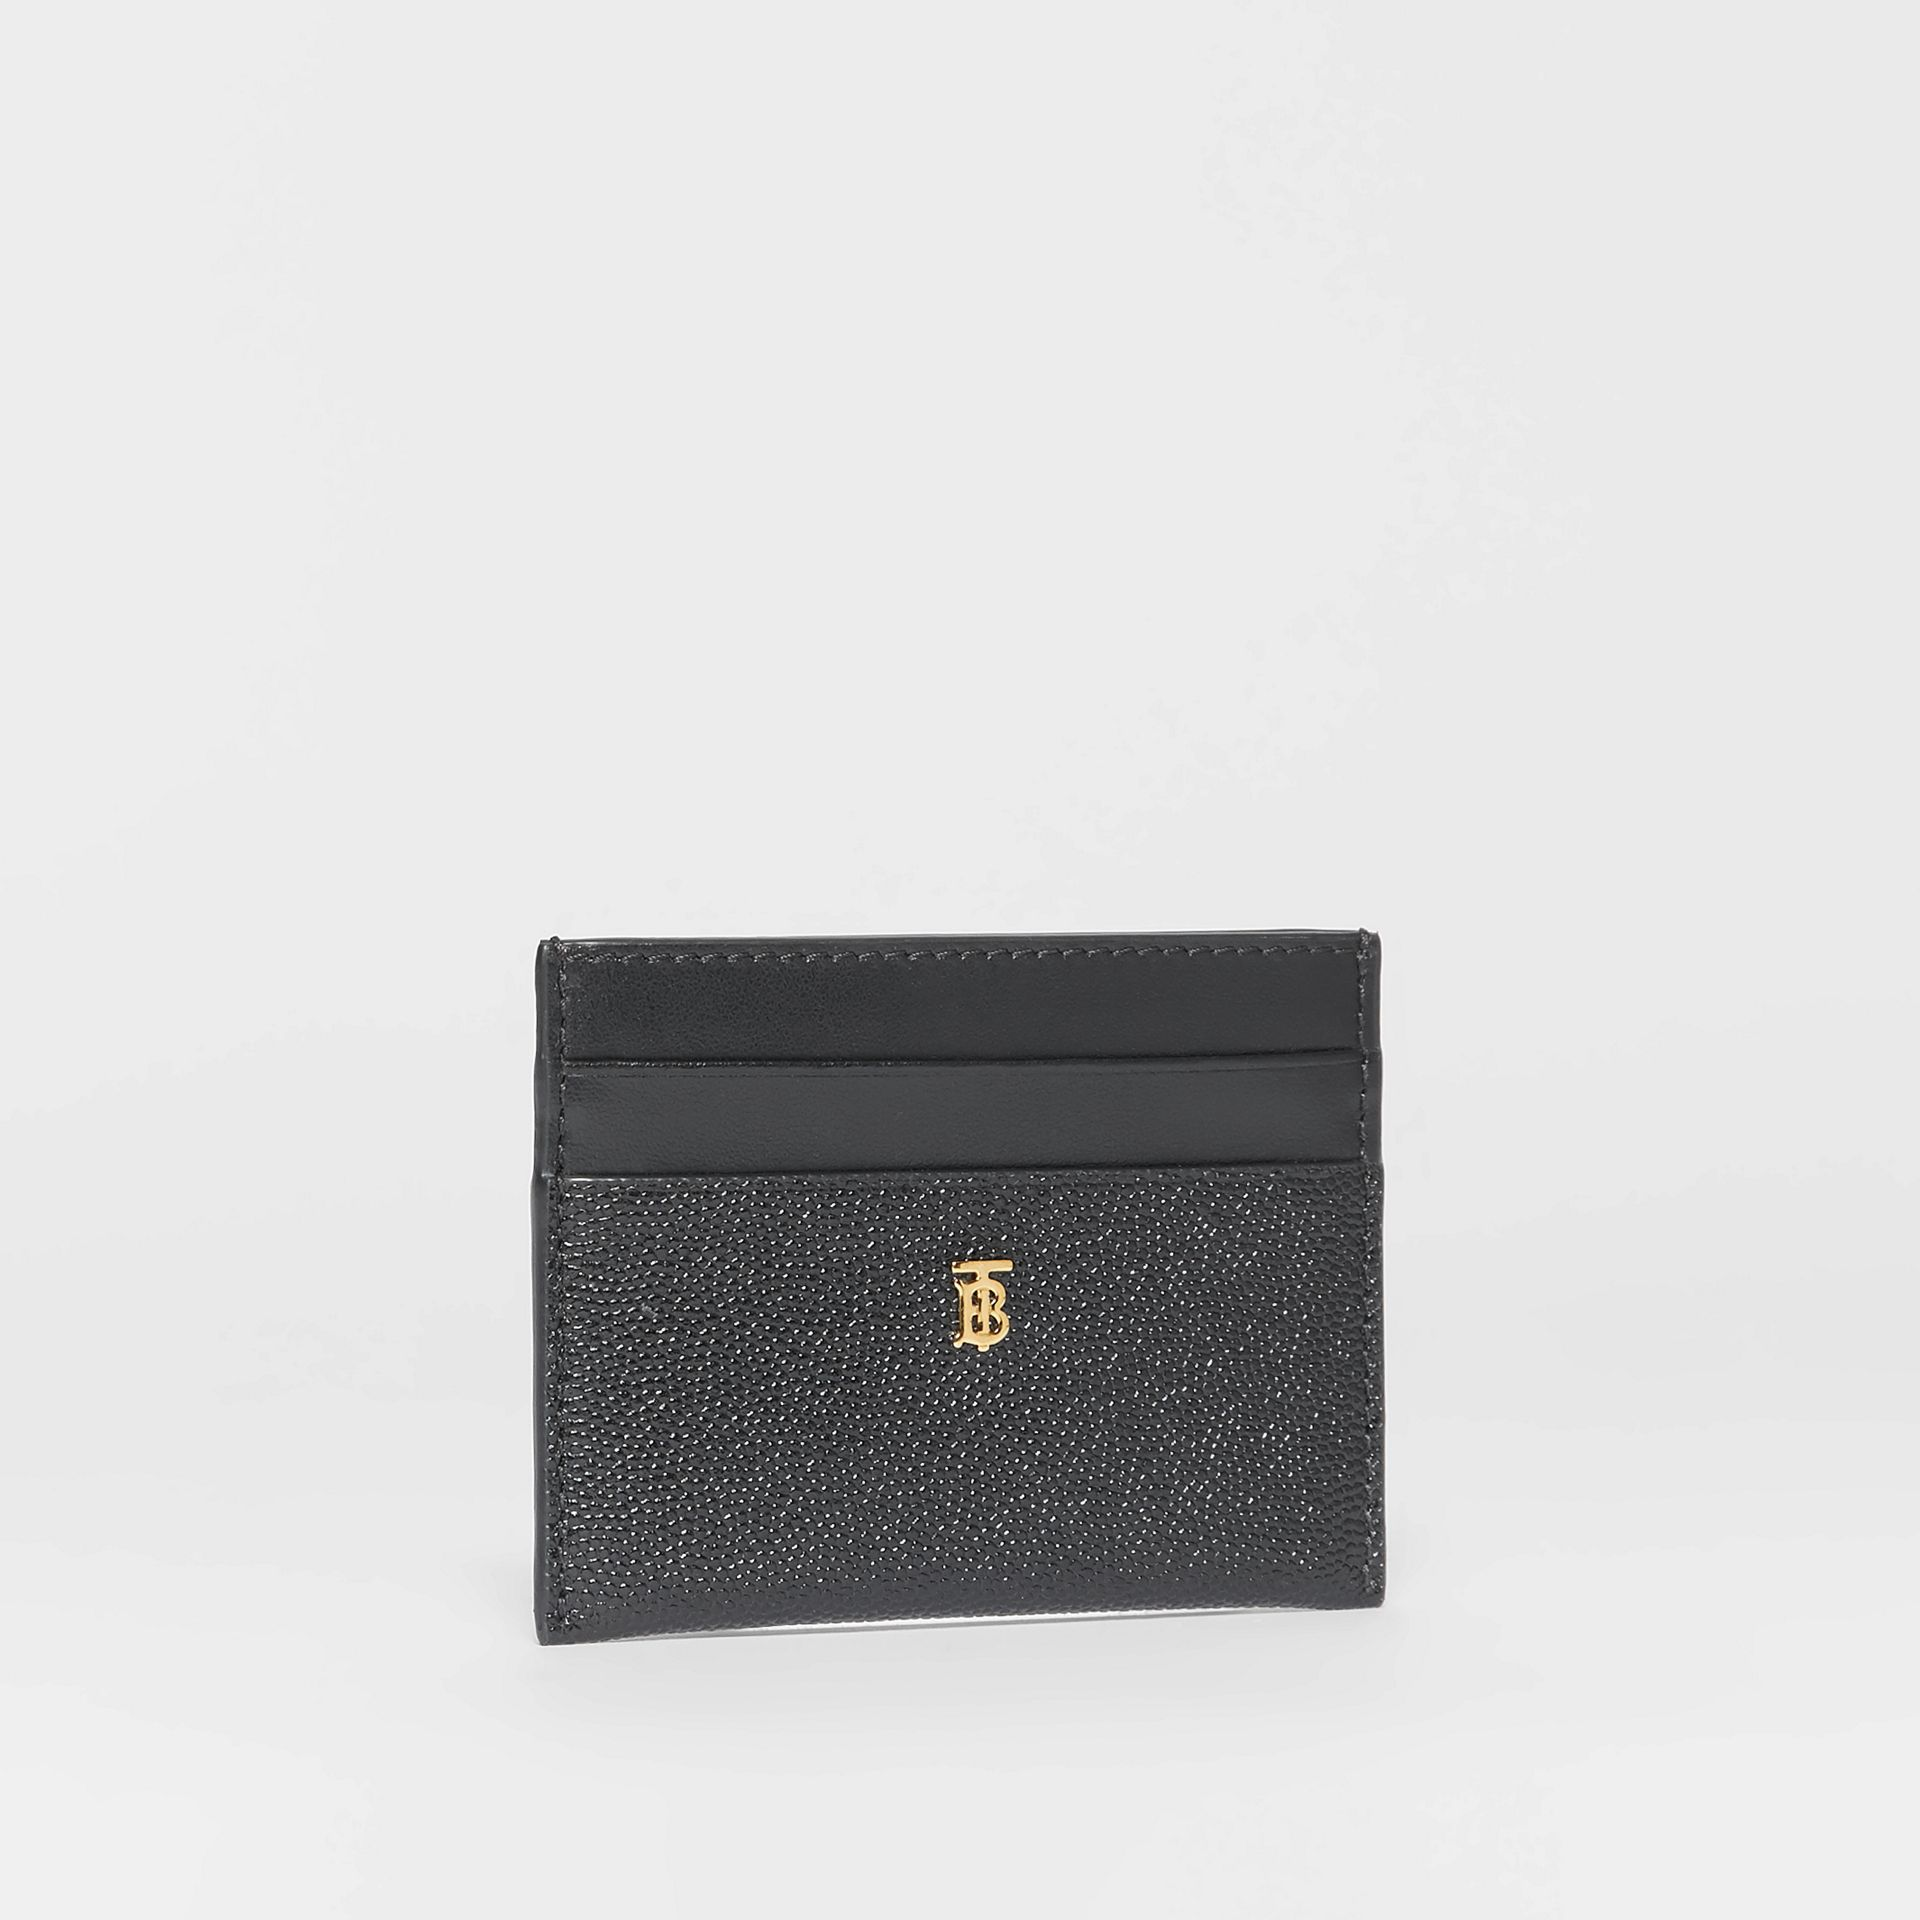 Monogram Motif Leather Card Case in Black - Women | Burberry United Kingdom - gallery image 3